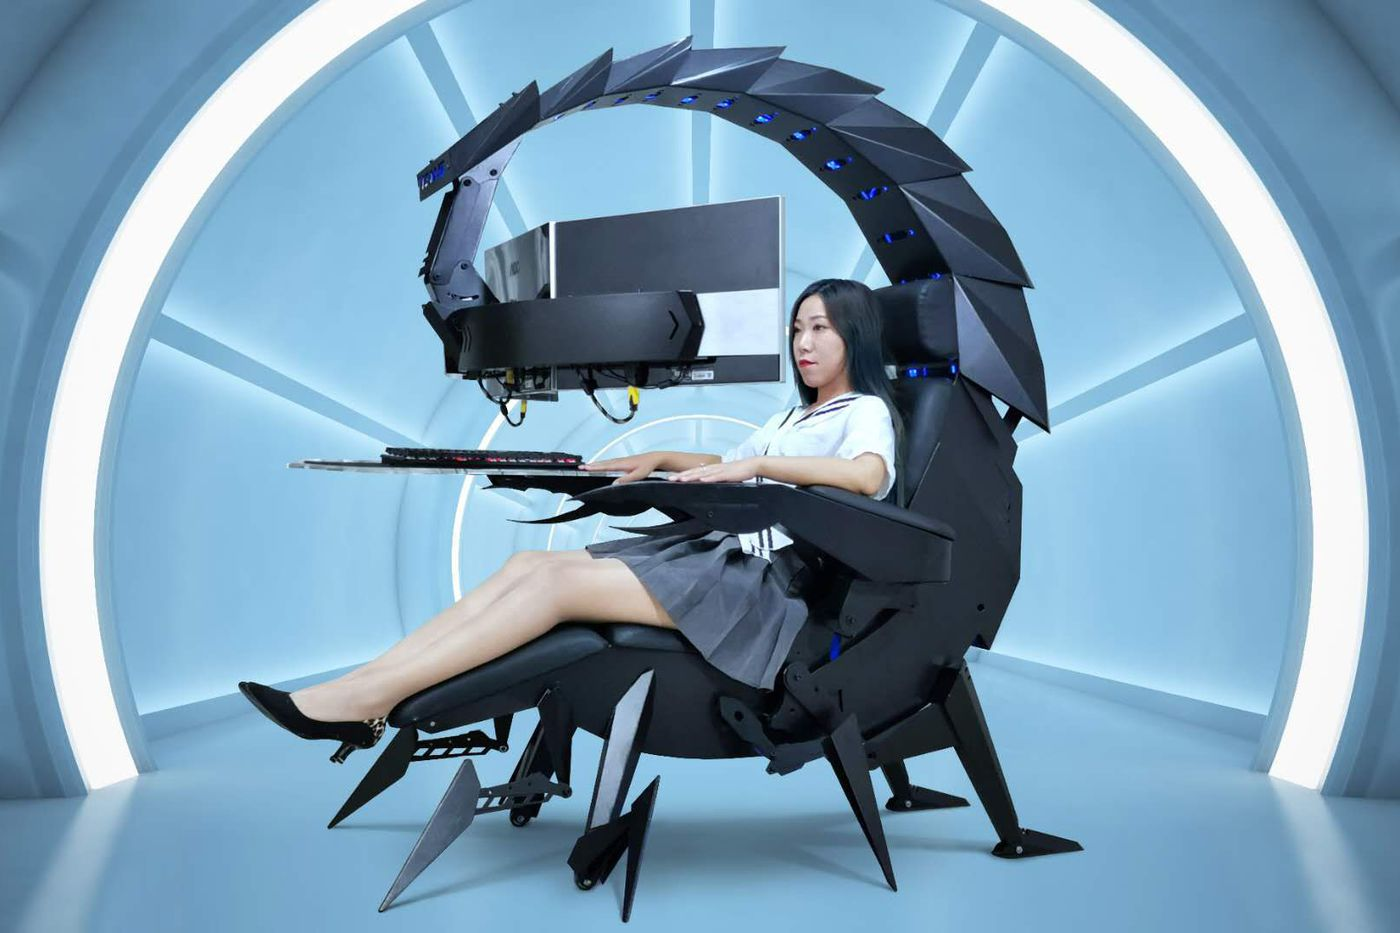 Nothing says 'ready to game' quite like being cocooned in a giant scorpion cockpit - The Verge